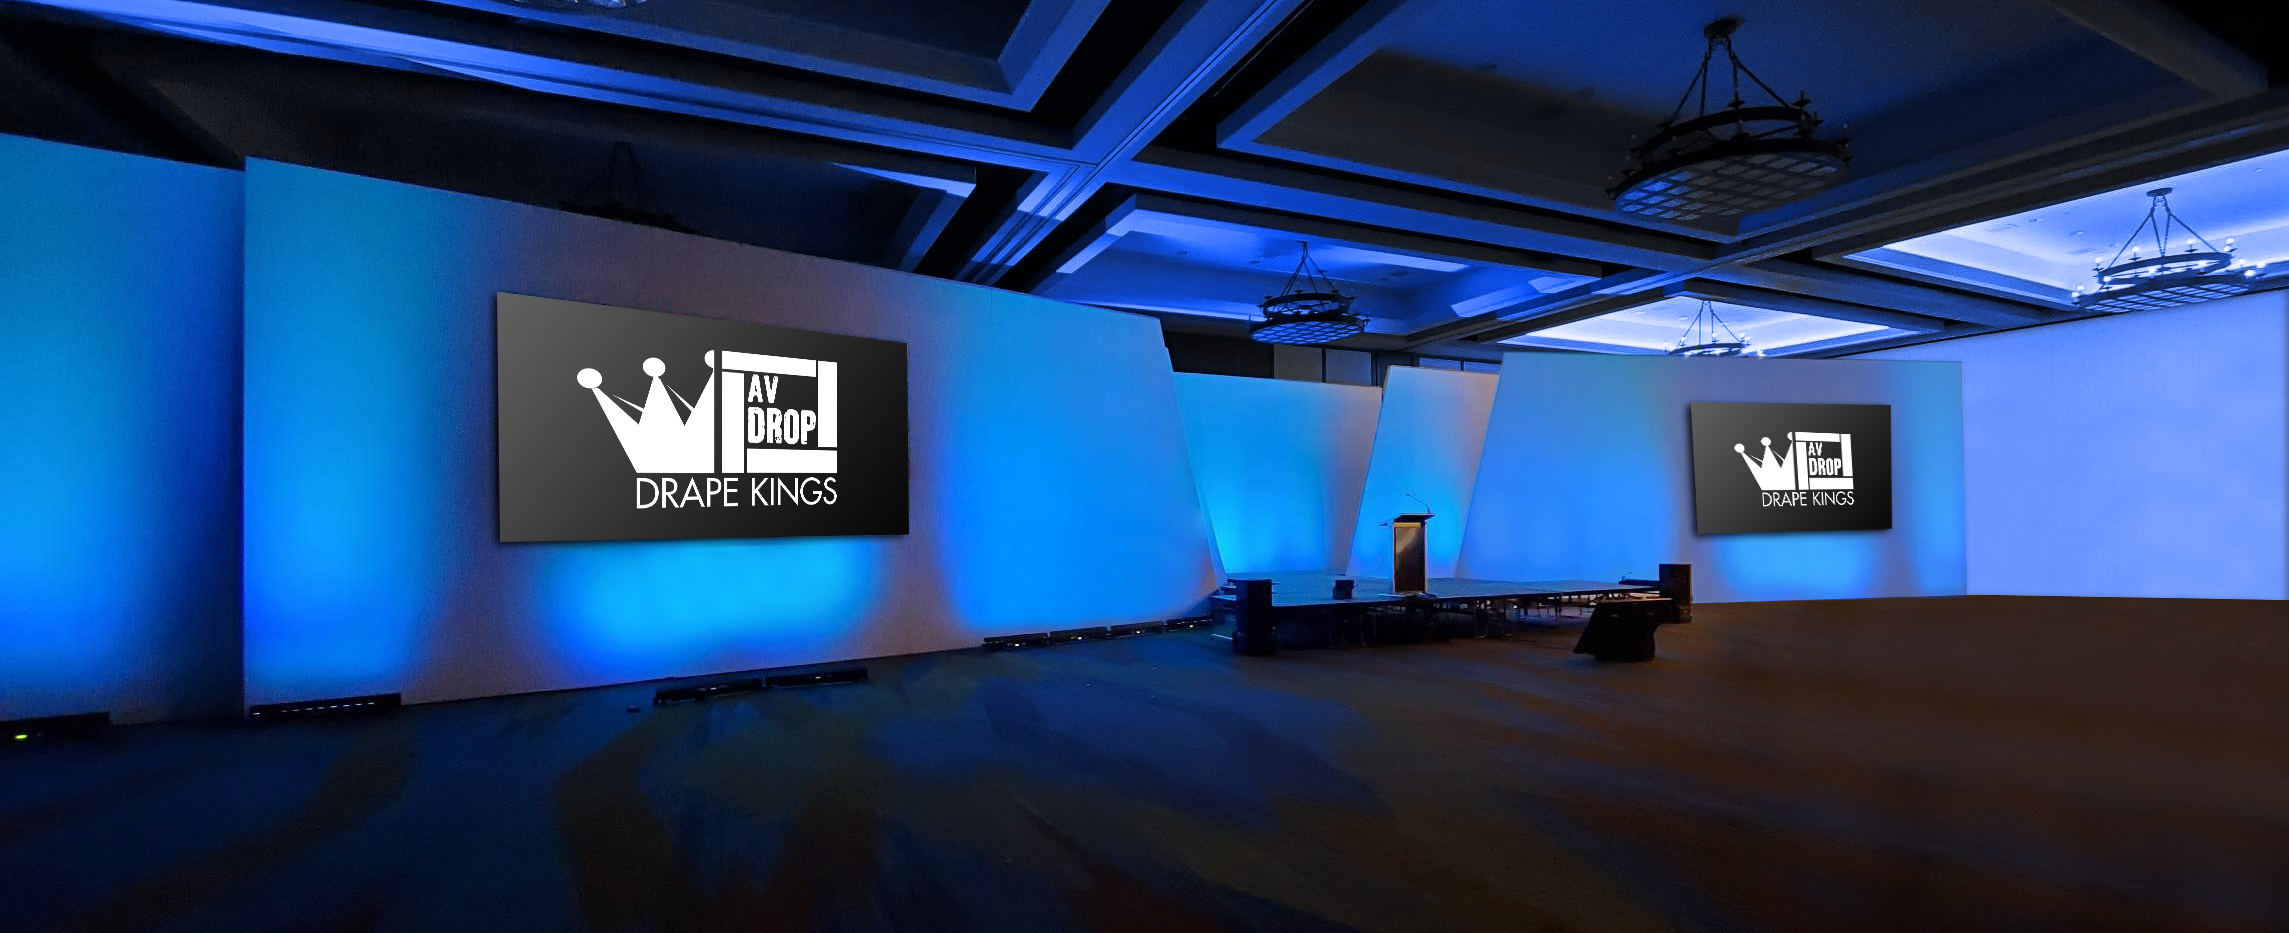 Angled Modular Backdrop with two front projection screens and blue up lighting on white walls for corporate meeting